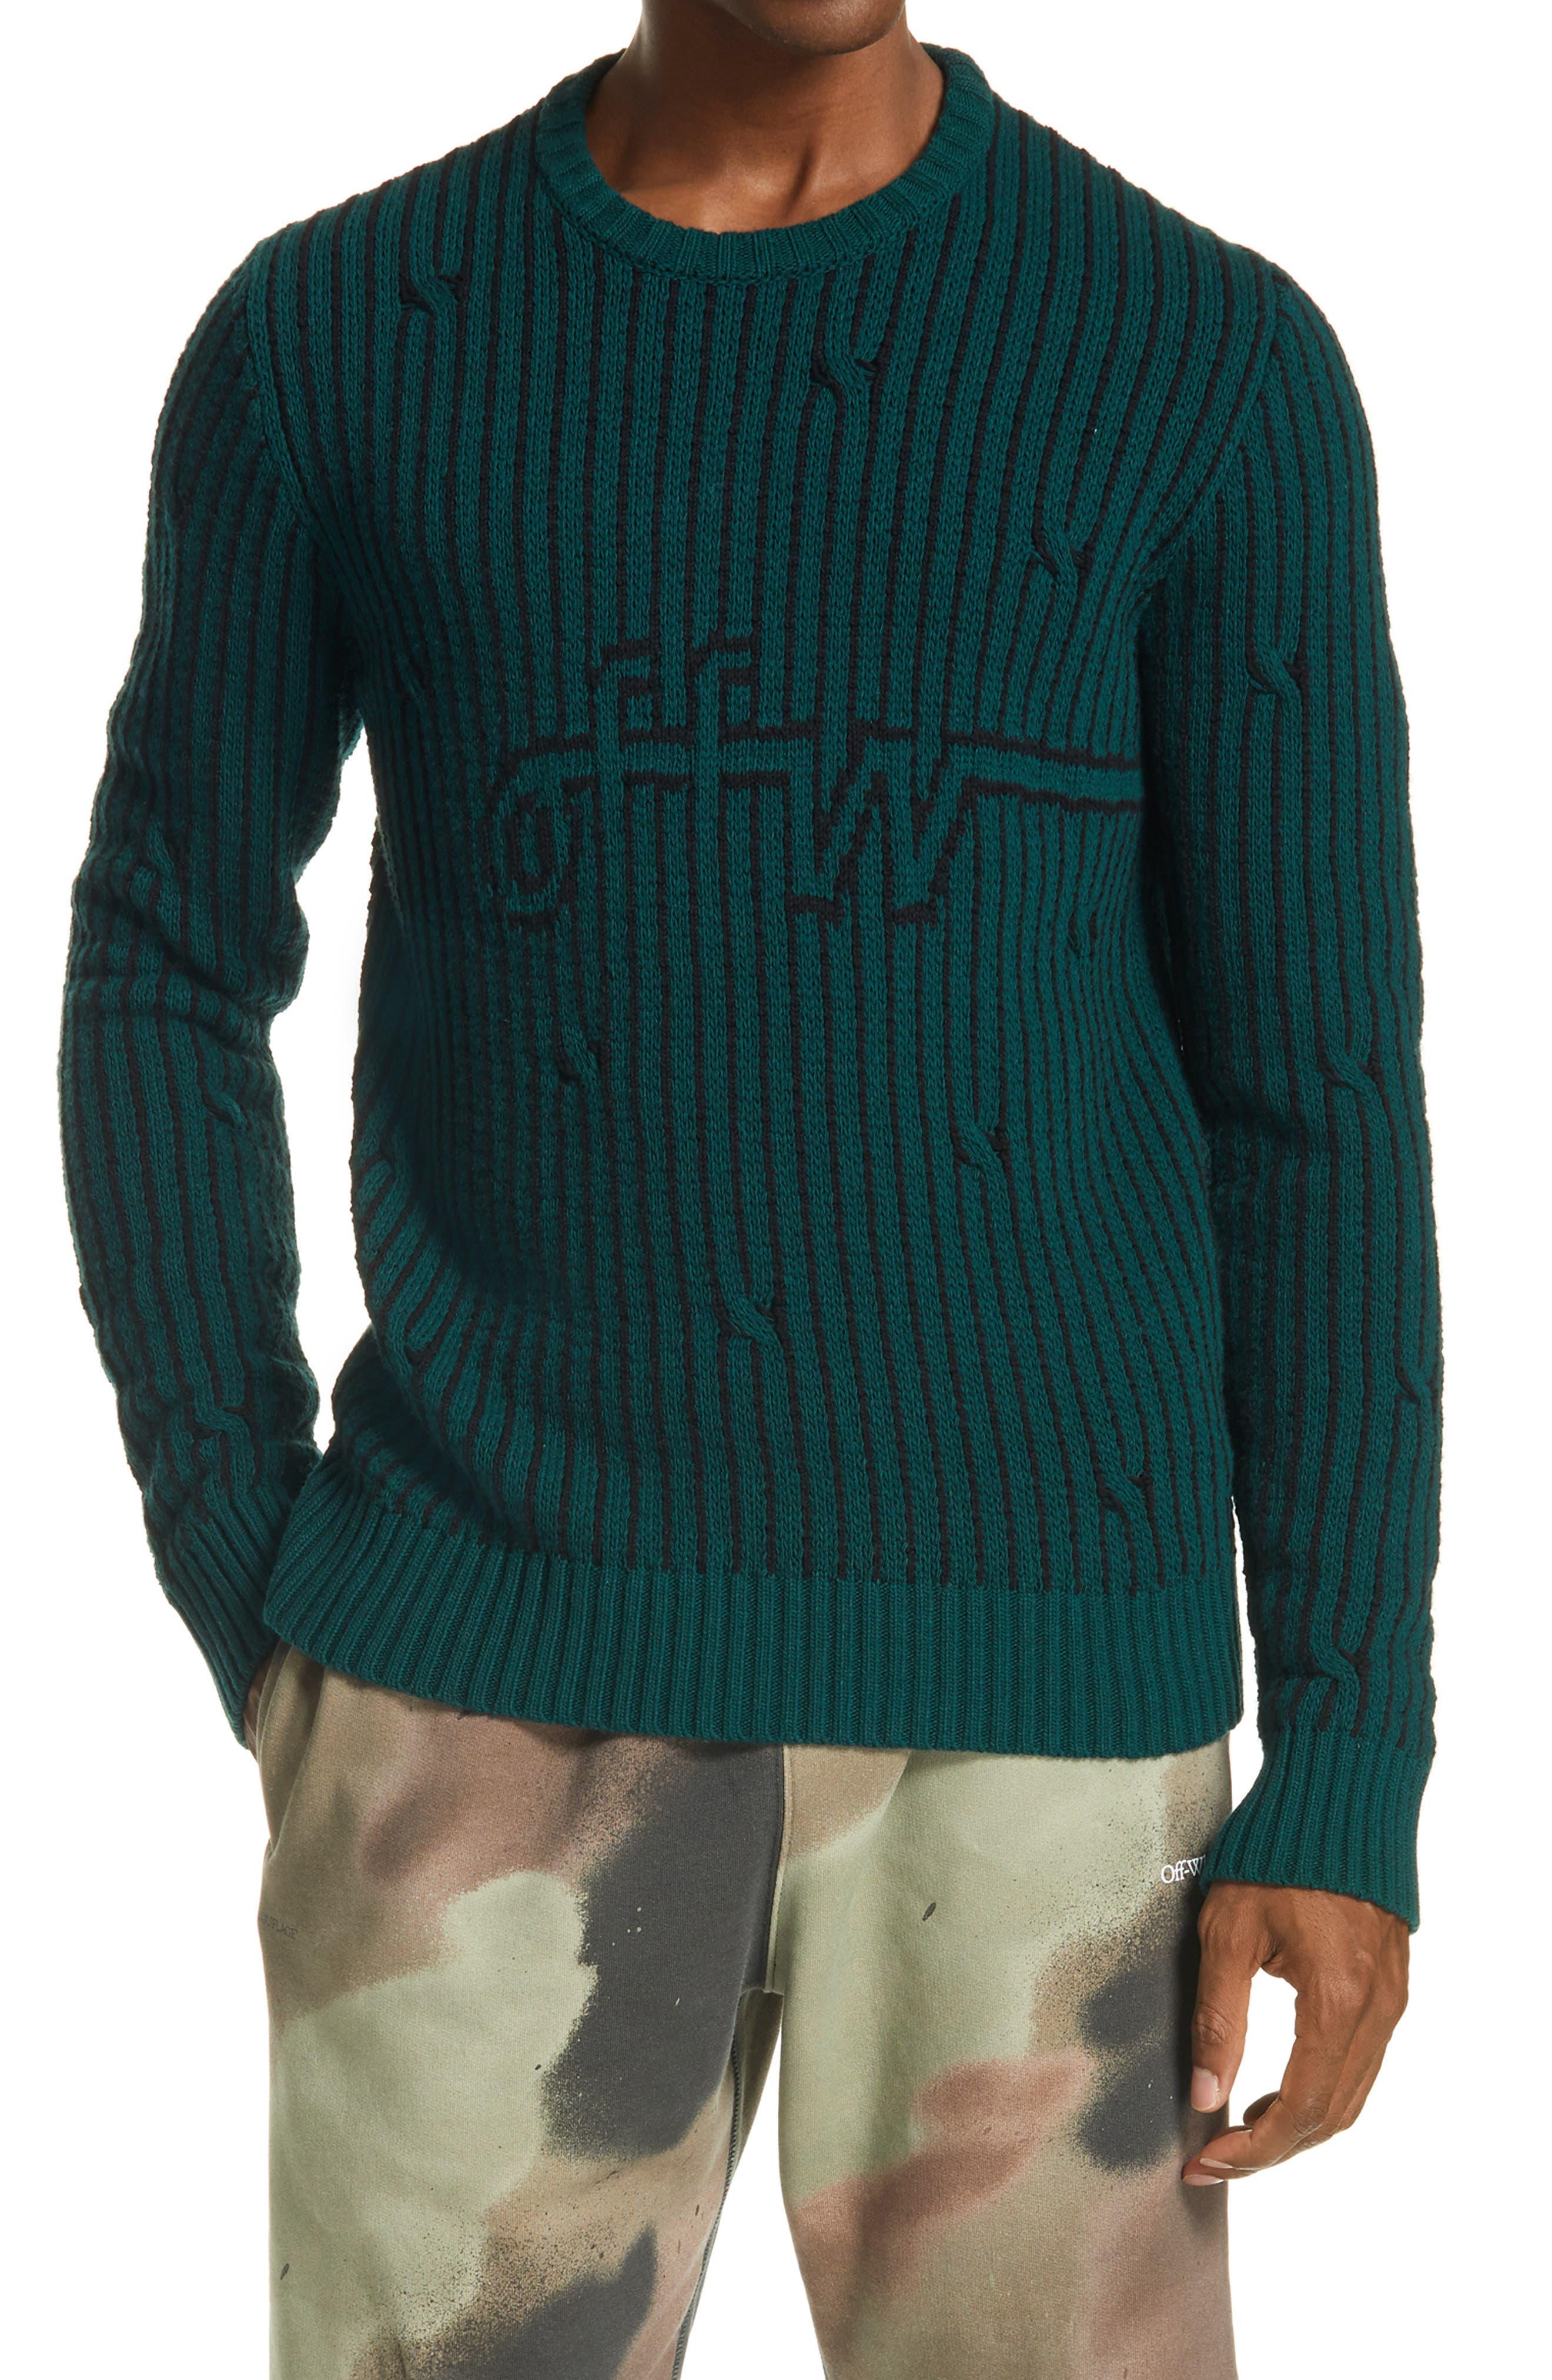 A simplistic logo blends in with the intersecting stripes on this cozy woolen sweater. Style Name: Off-White Logo Jacquard Wool Blend Men\\\'s Sweater. Style Number: 6074732. Available in stores.